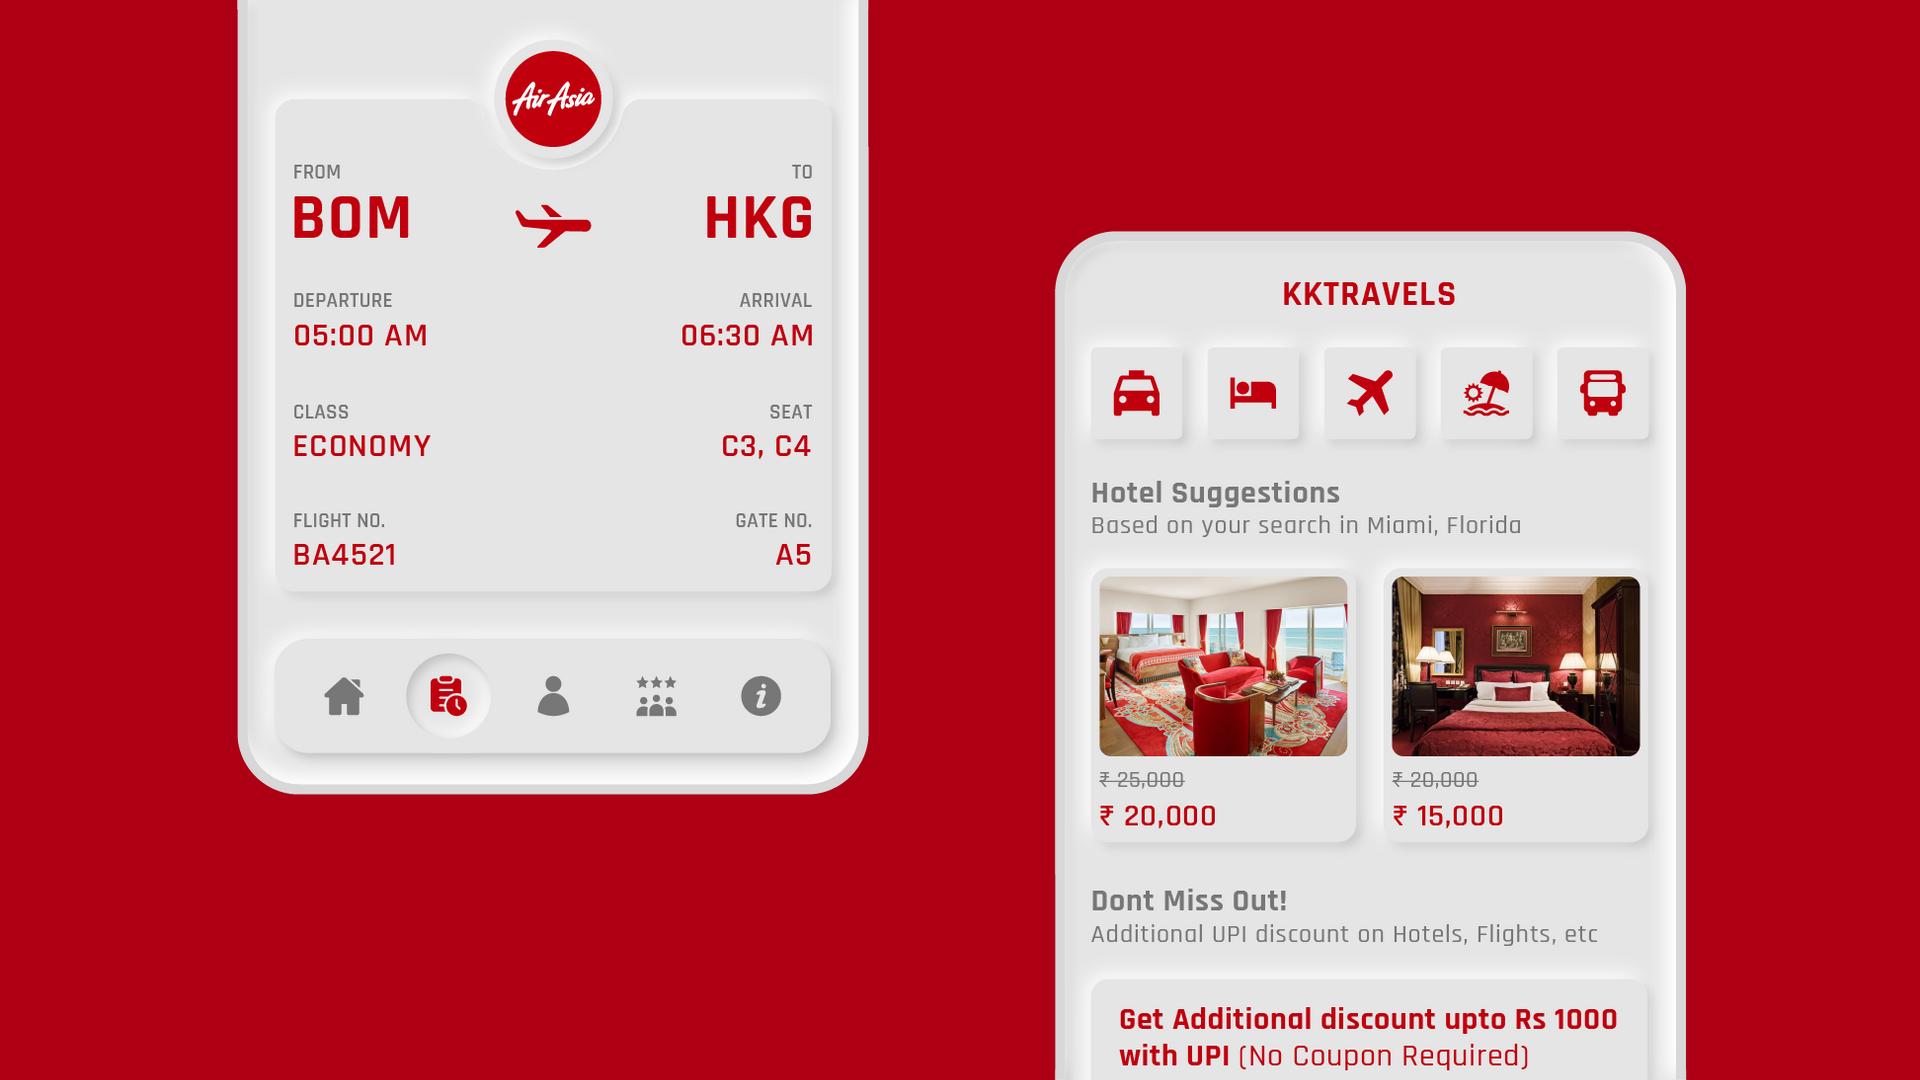 KK TRAVELS | USER EXPERIENCE DESIGN